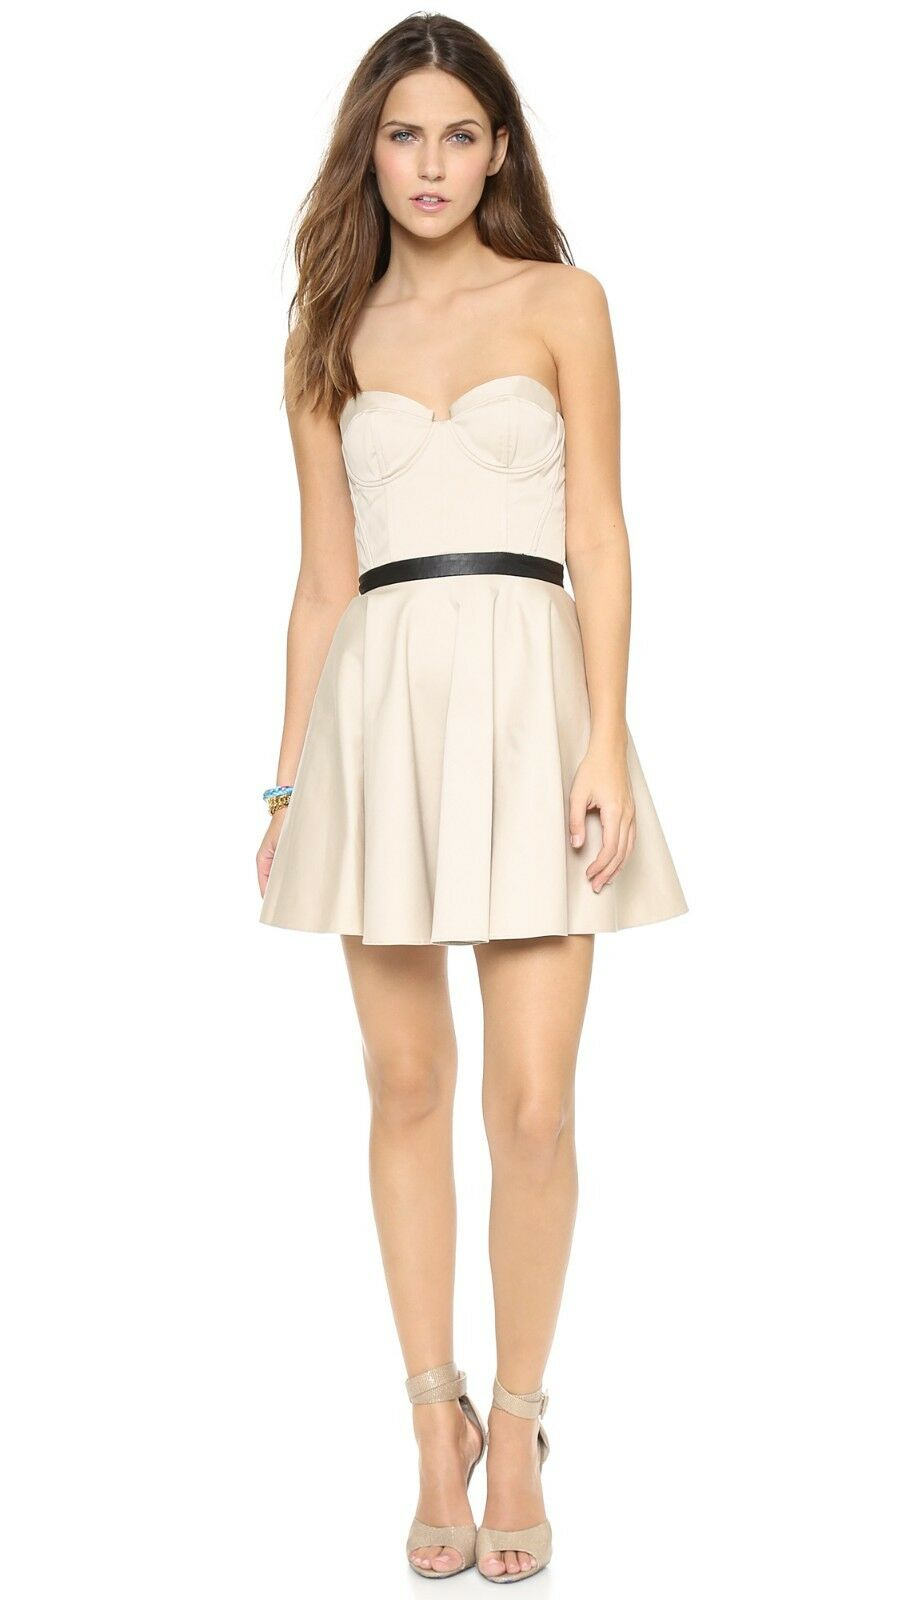 396 396 396 New Alice + Olivia Simoes Strapless Bustier Mini Dress 10 Stone a56f2c